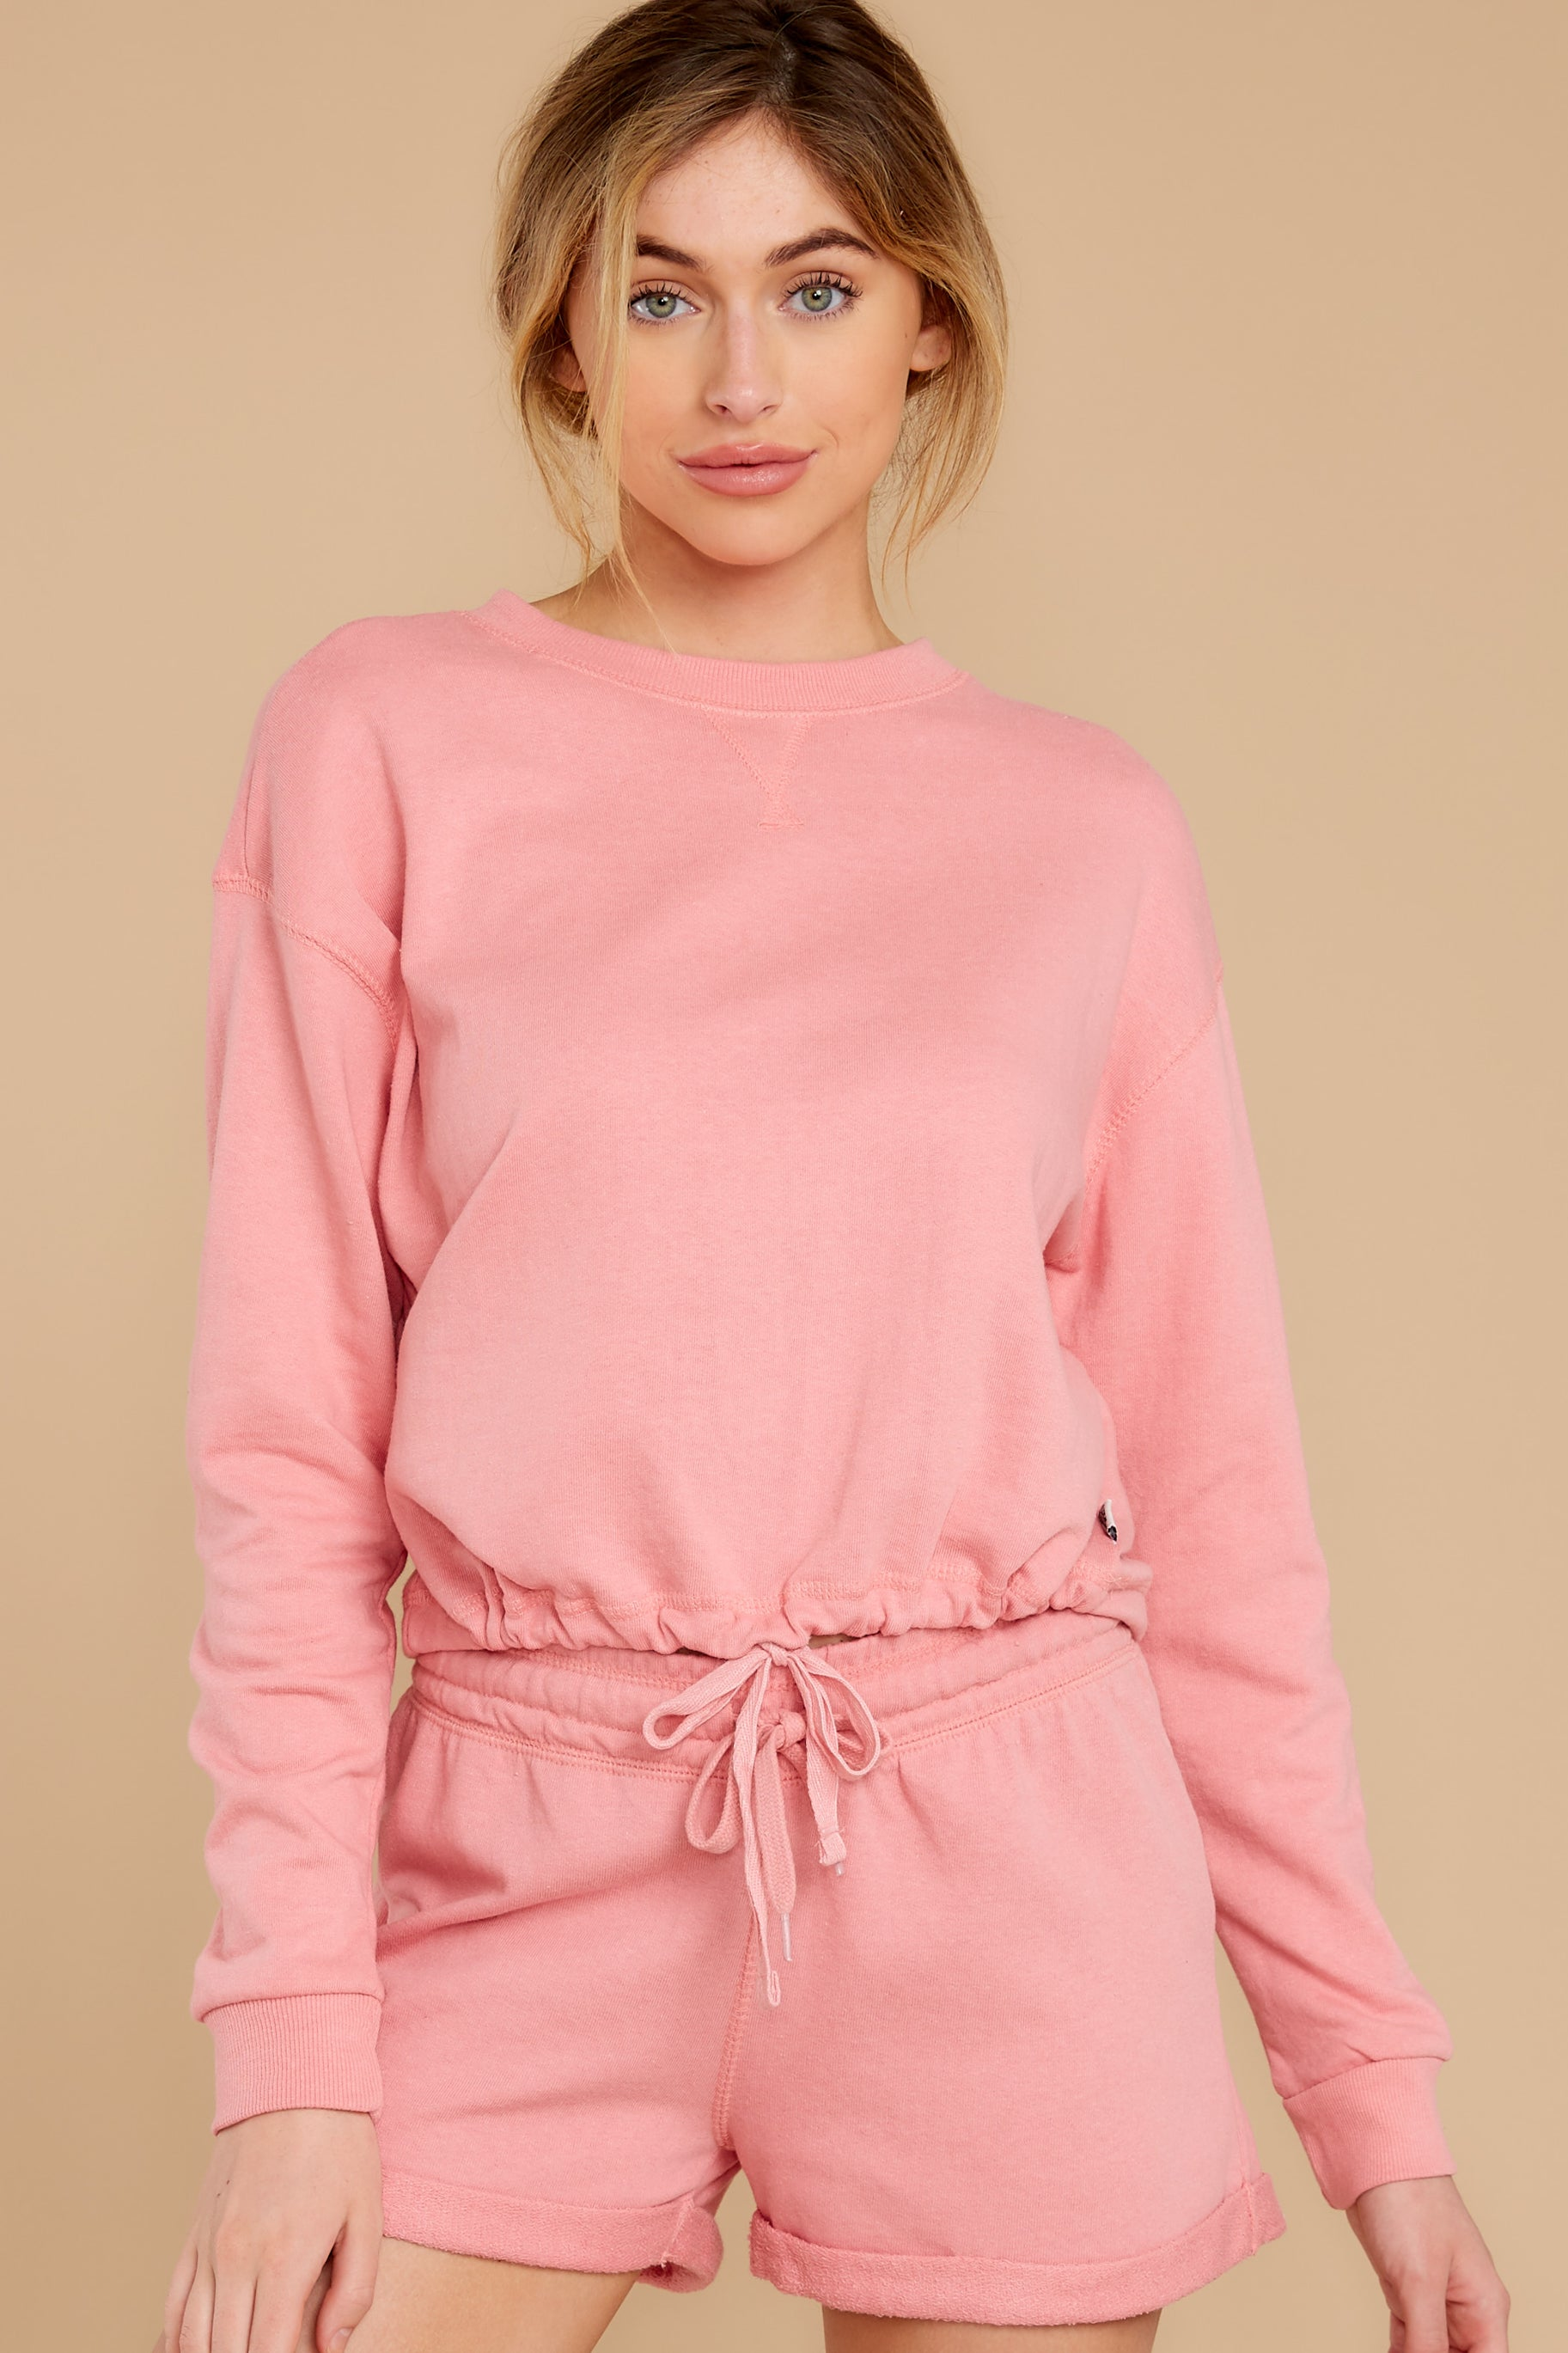 5 Cozy As Can Be Rose Pink Sweatshirt at reddress.com